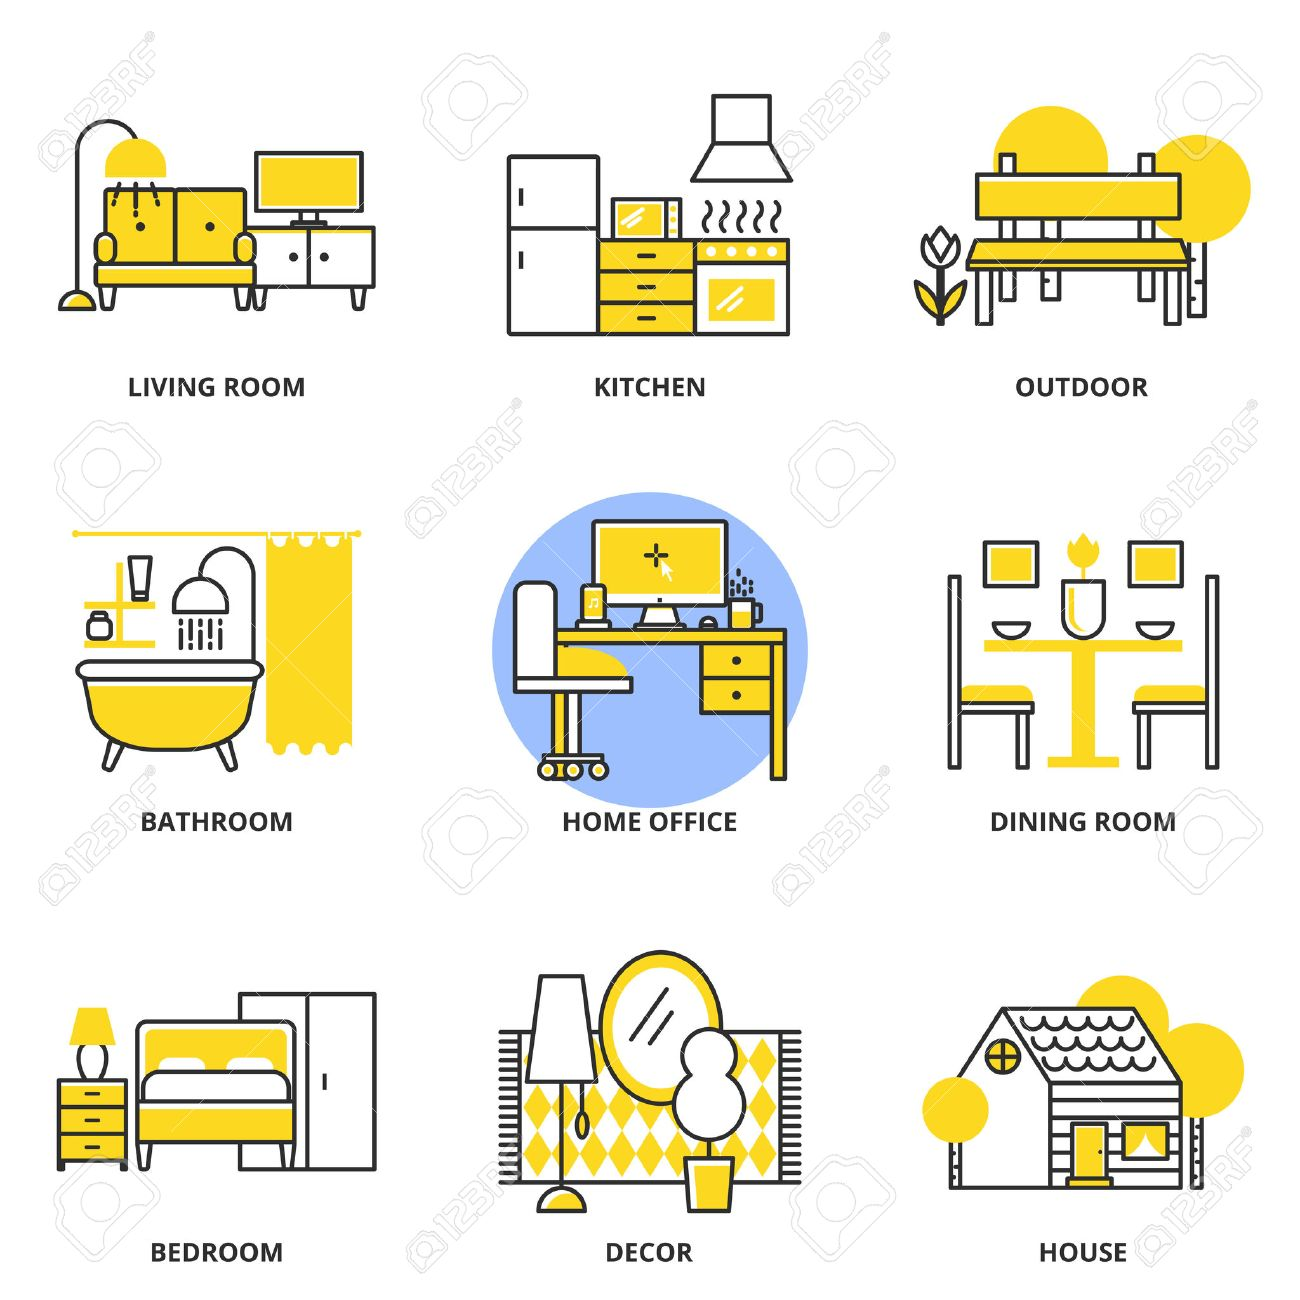 Furniture Vector Icons Set Living Room Kitchen Outdoor Bathroom